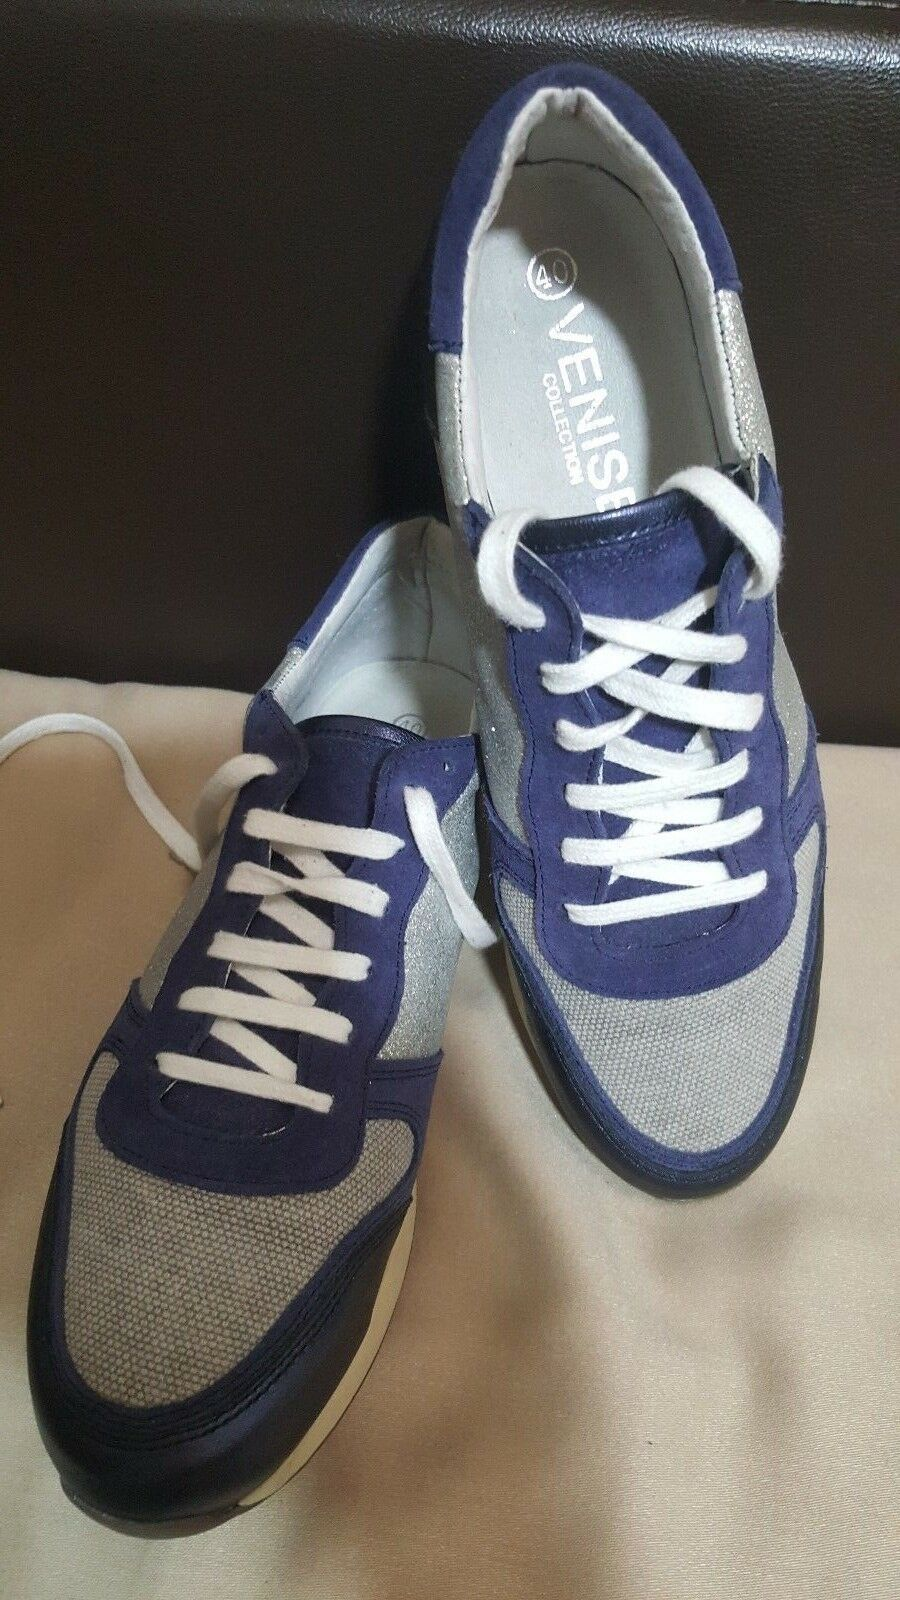 VENISE COLLECTION Made in Spain Women's Sneakers -size UK 7  EU 40-